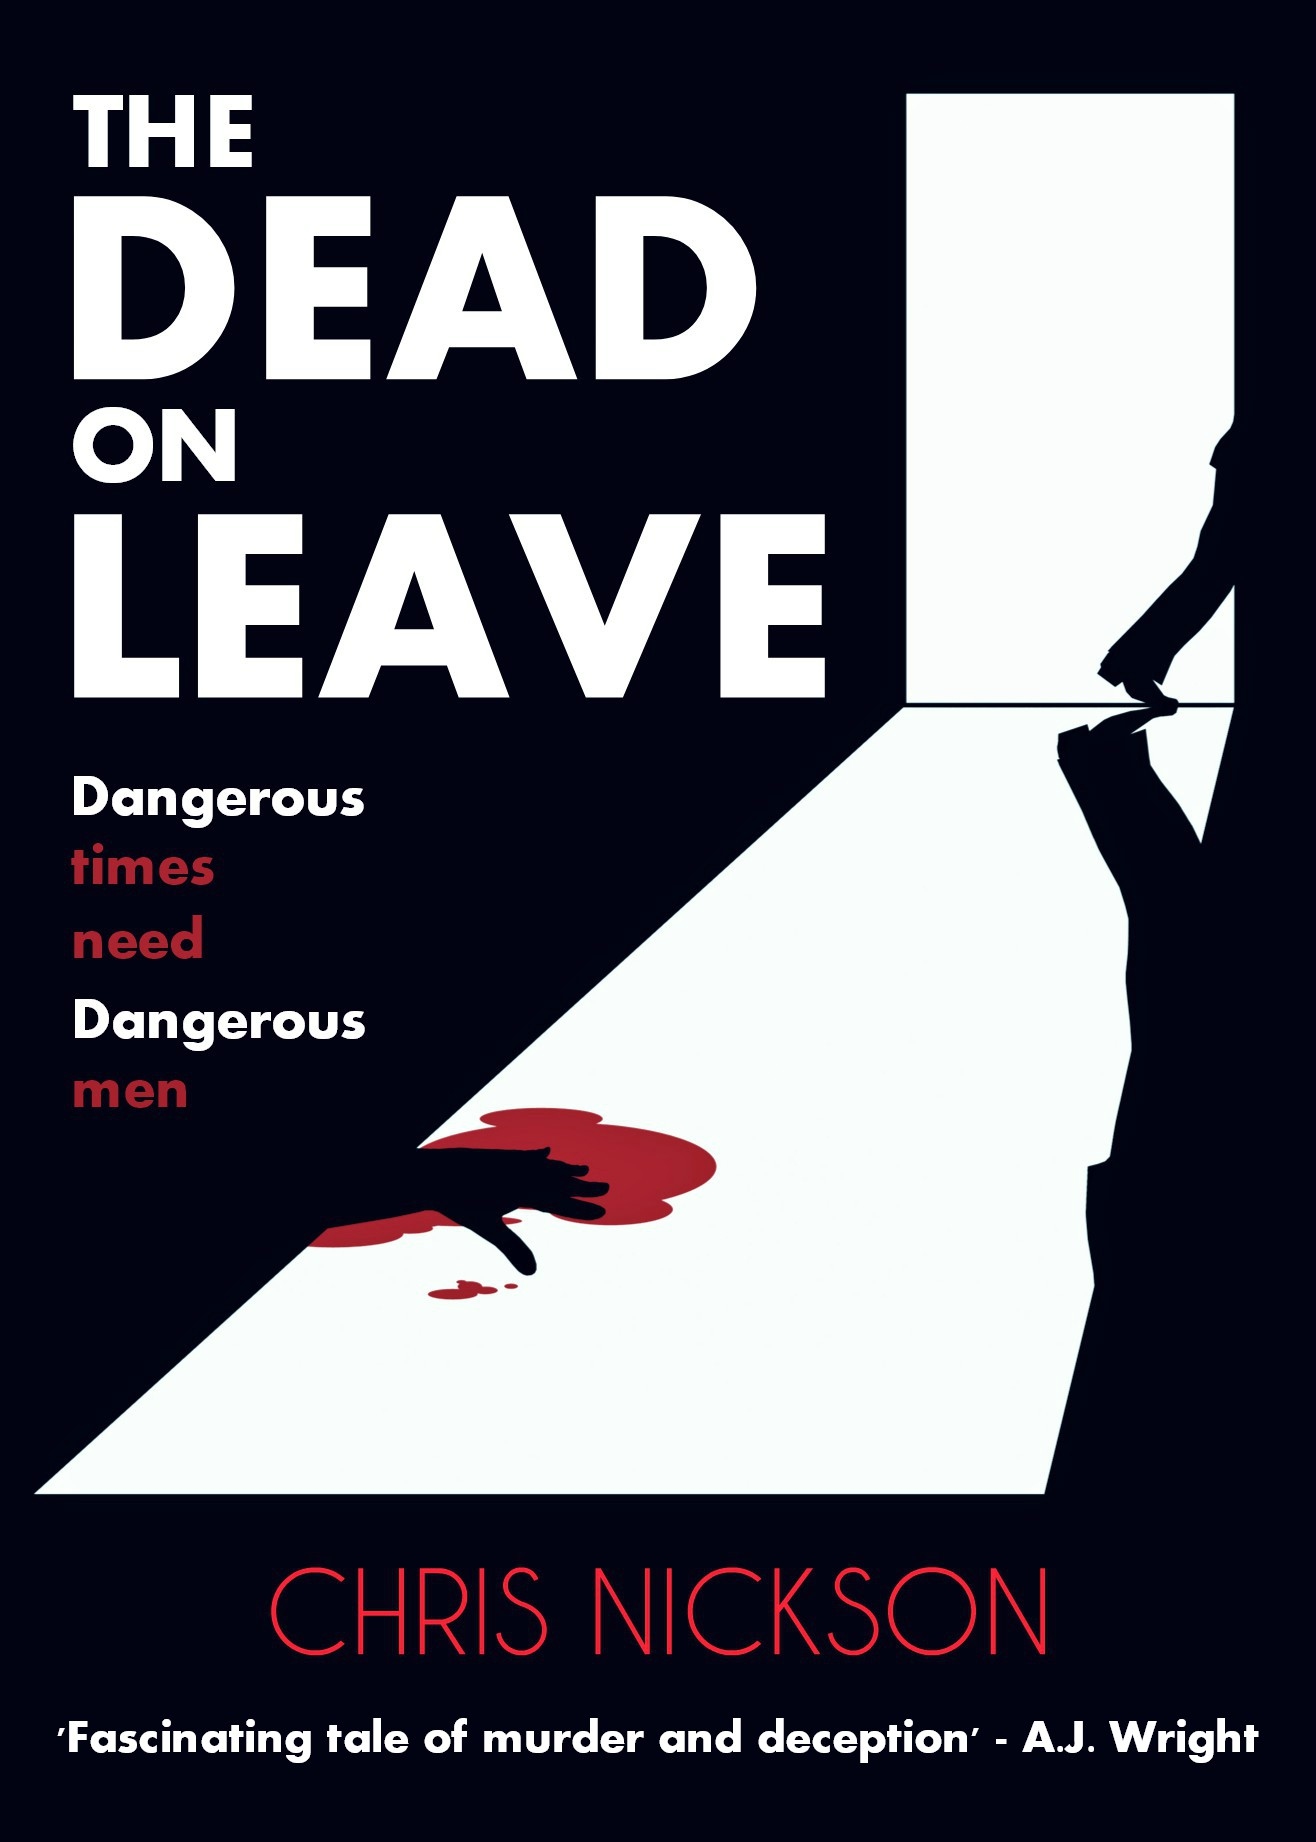 The Dead on Leave (1).jpg